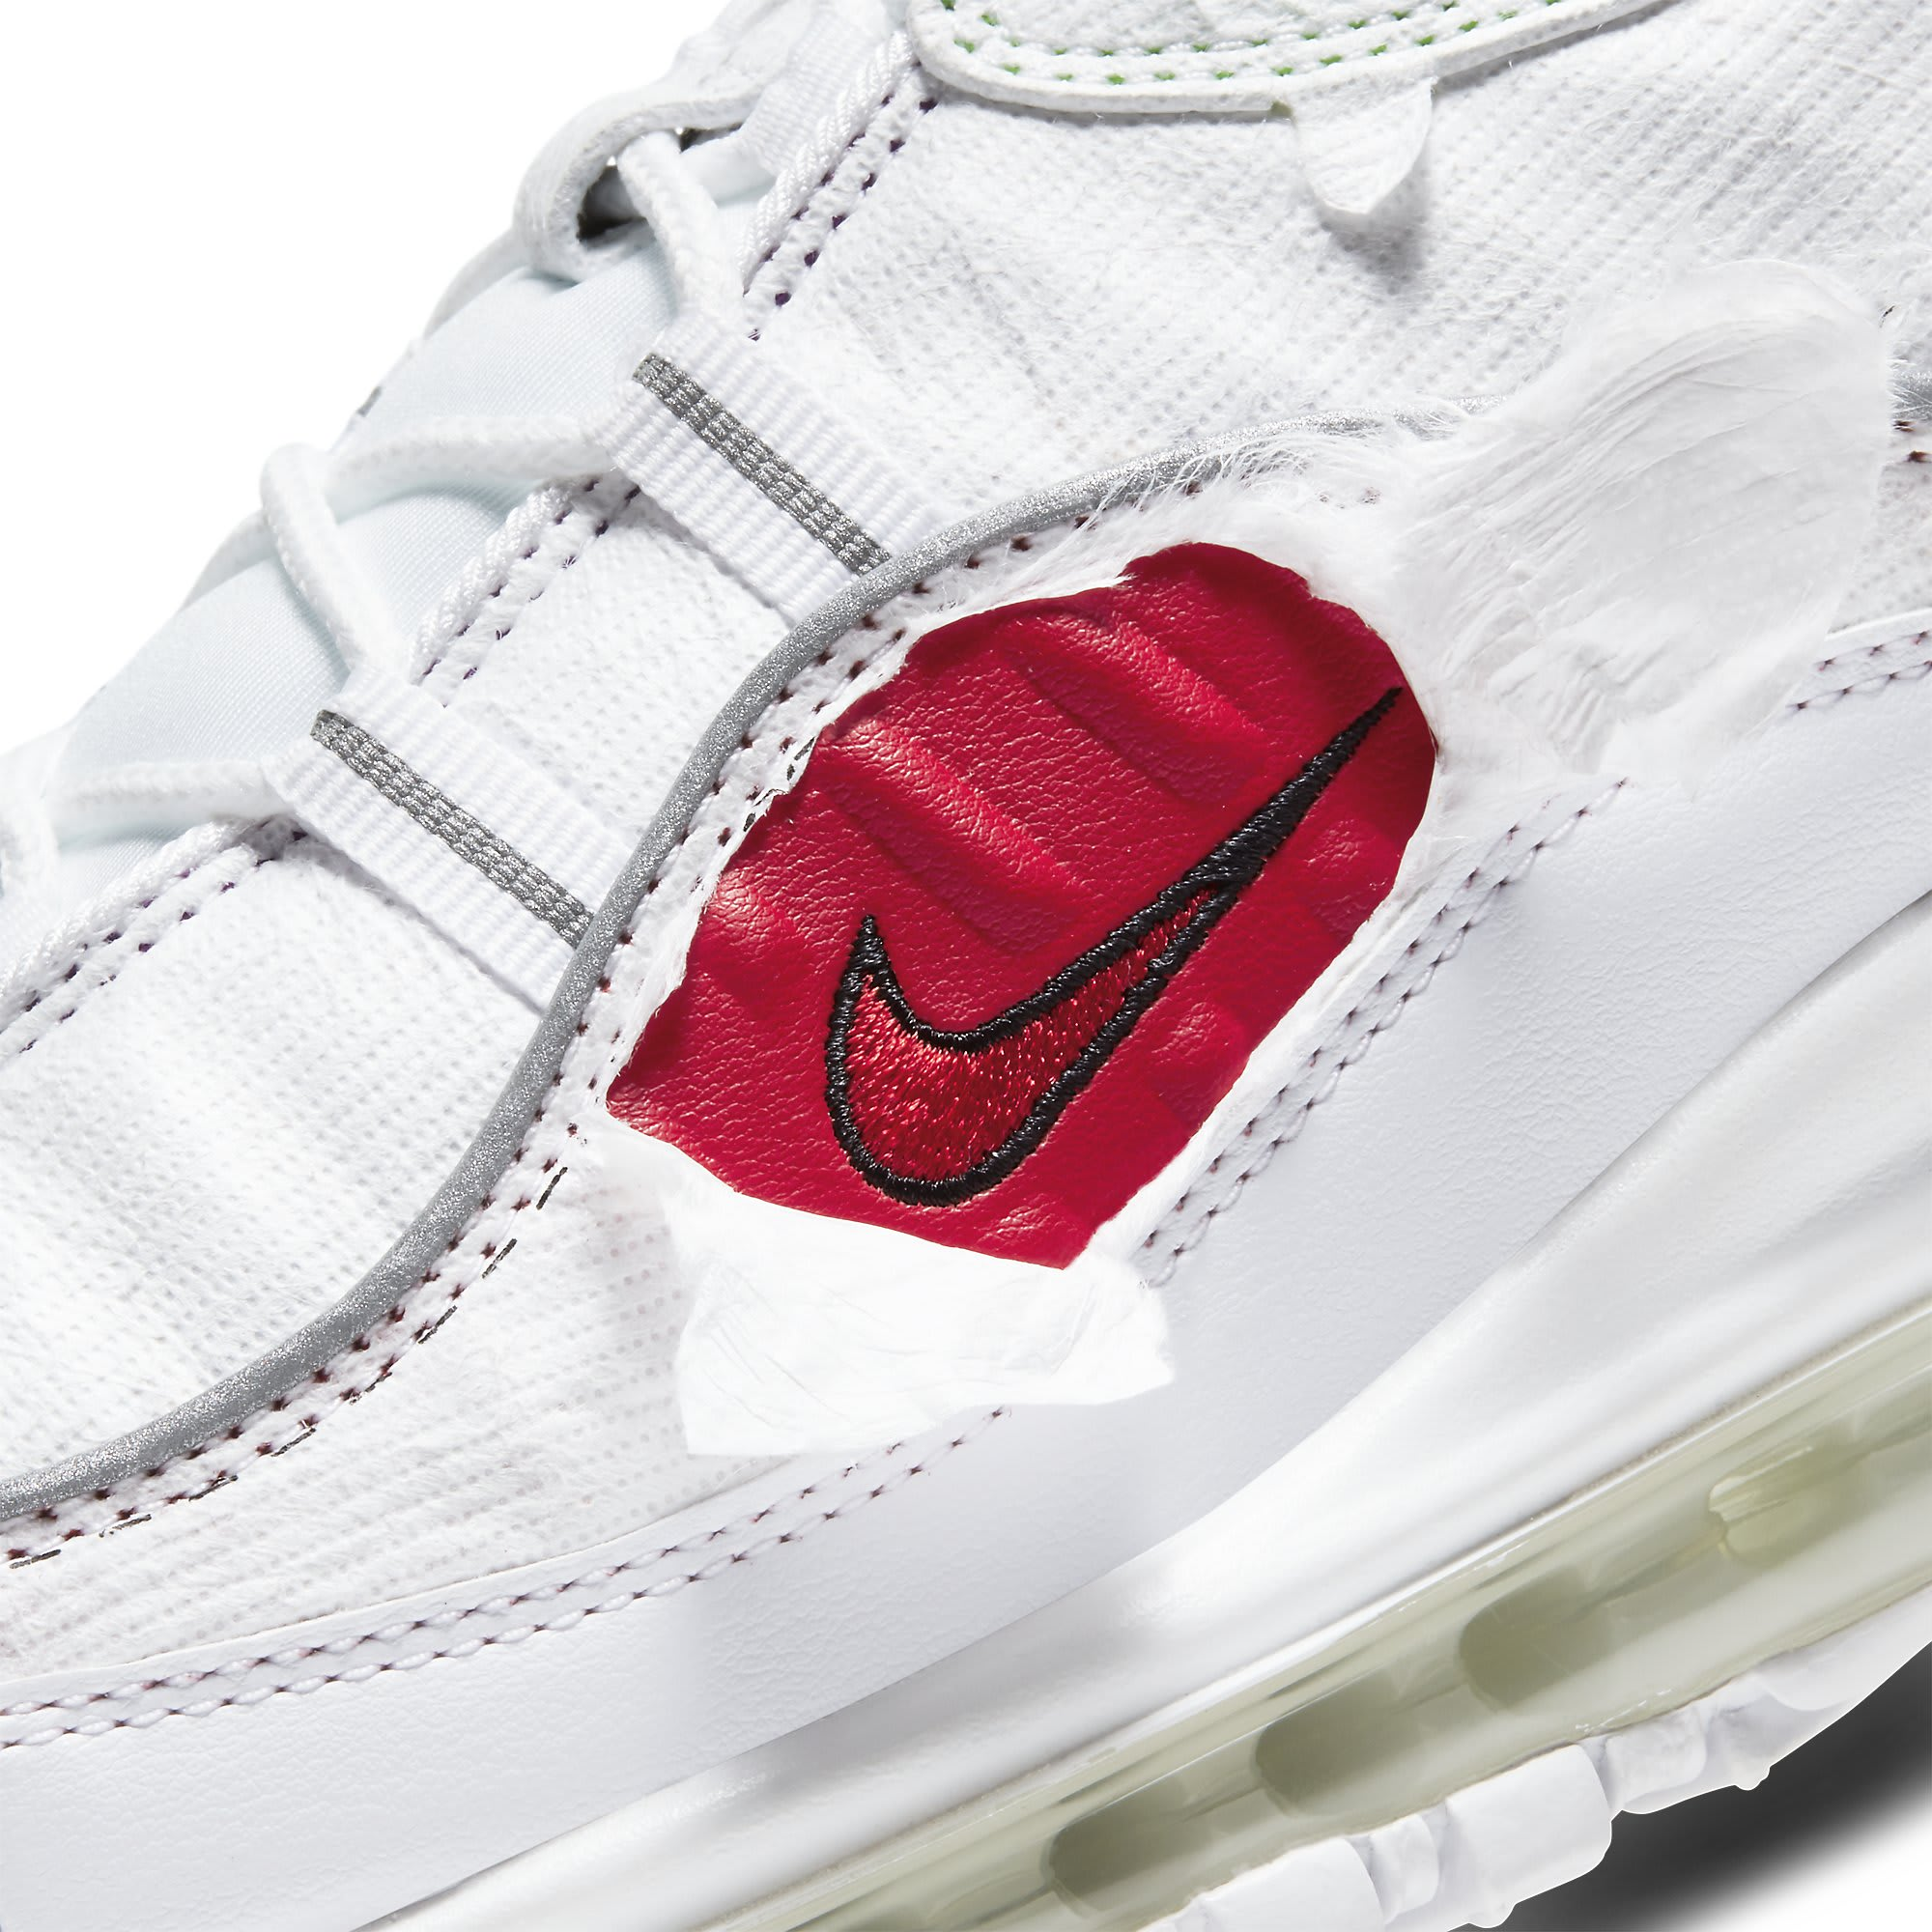 Nike Air Max 98 Tearaway CJ0634-101 Medial